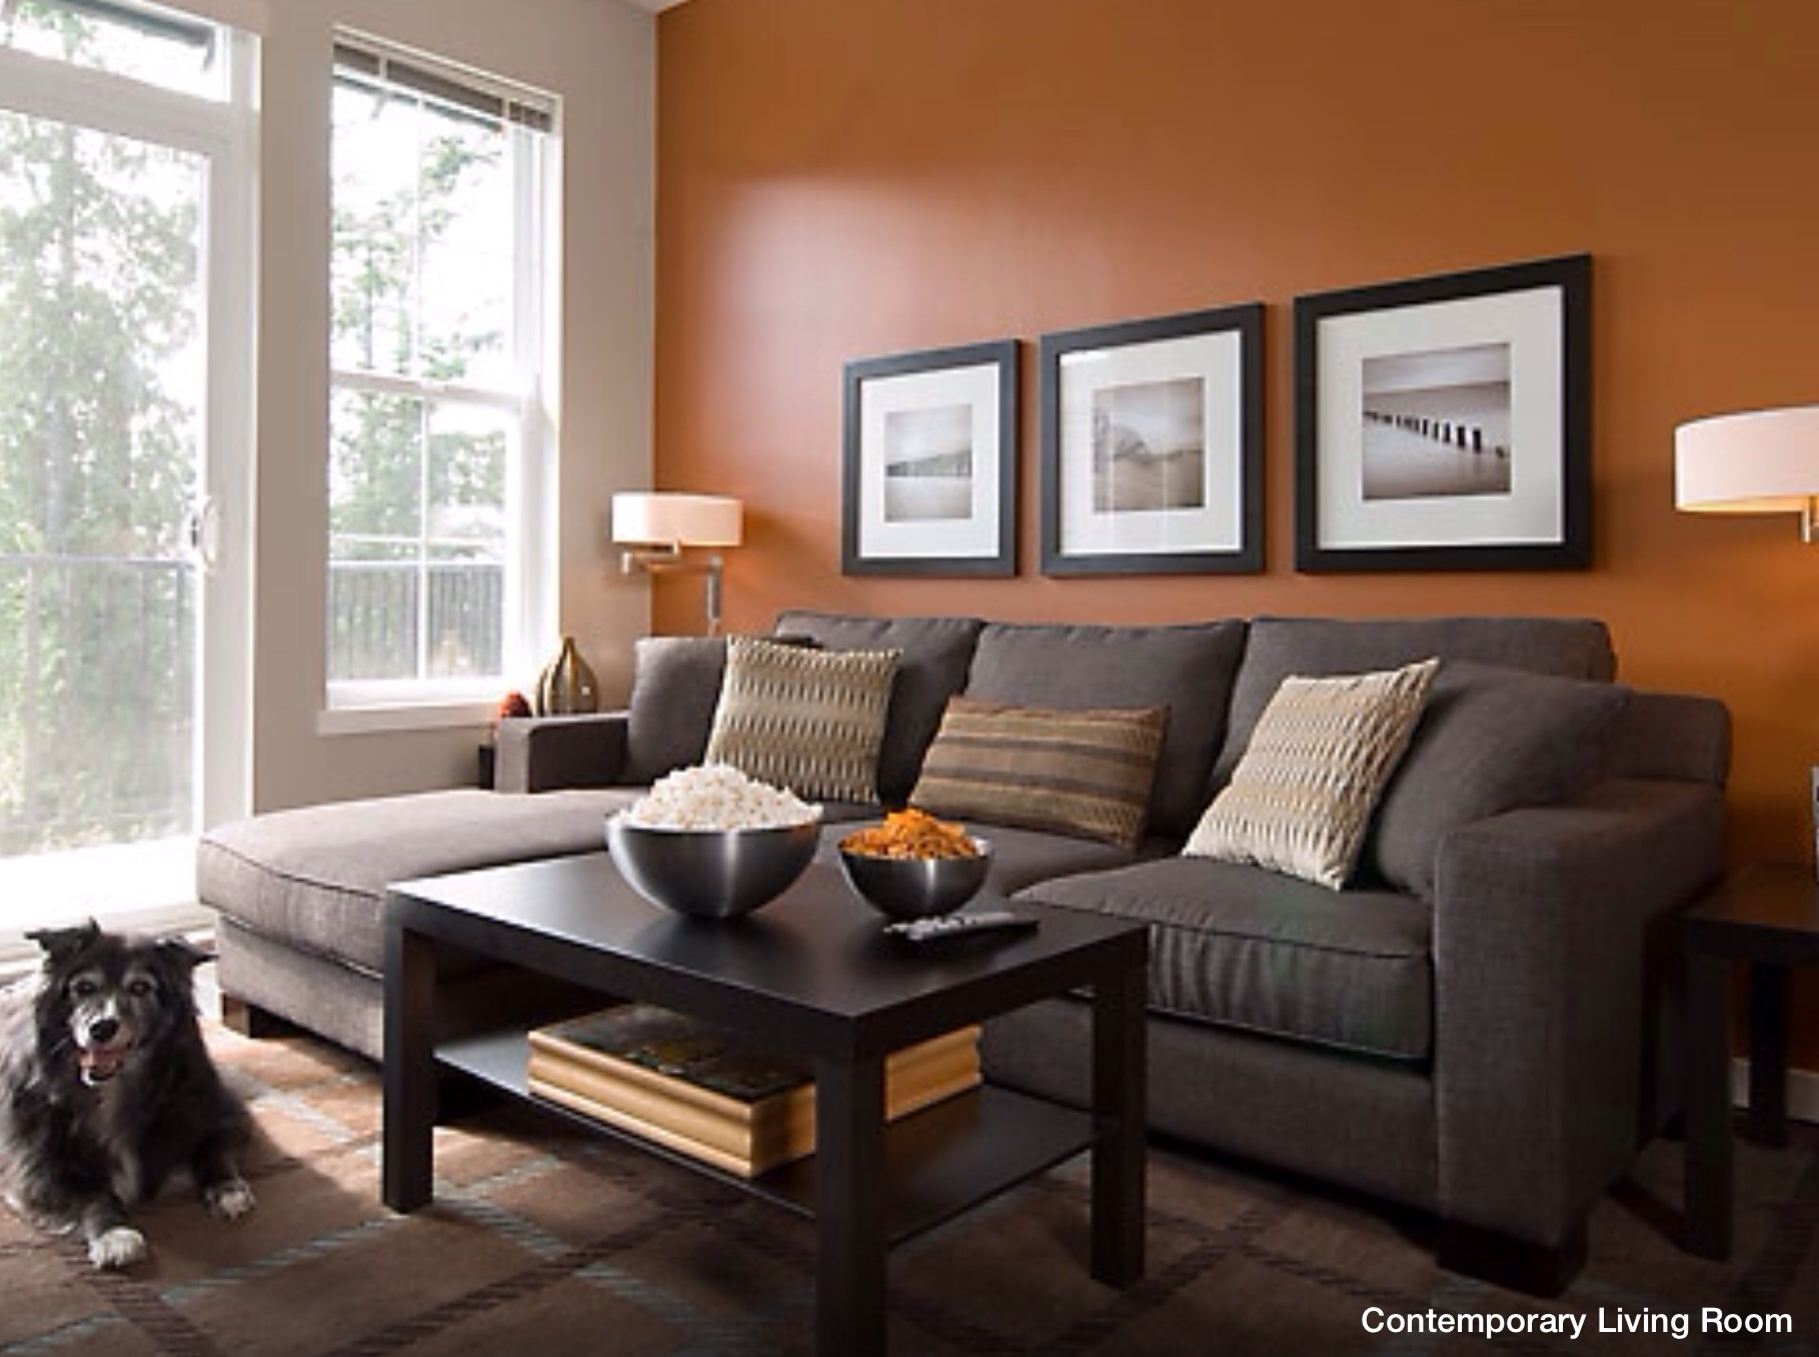 Wall Accent Color | Wall Colors That Work | Pinterest | Wall With Most Popular Brown Couch Wall Accents (View 14 of 15)